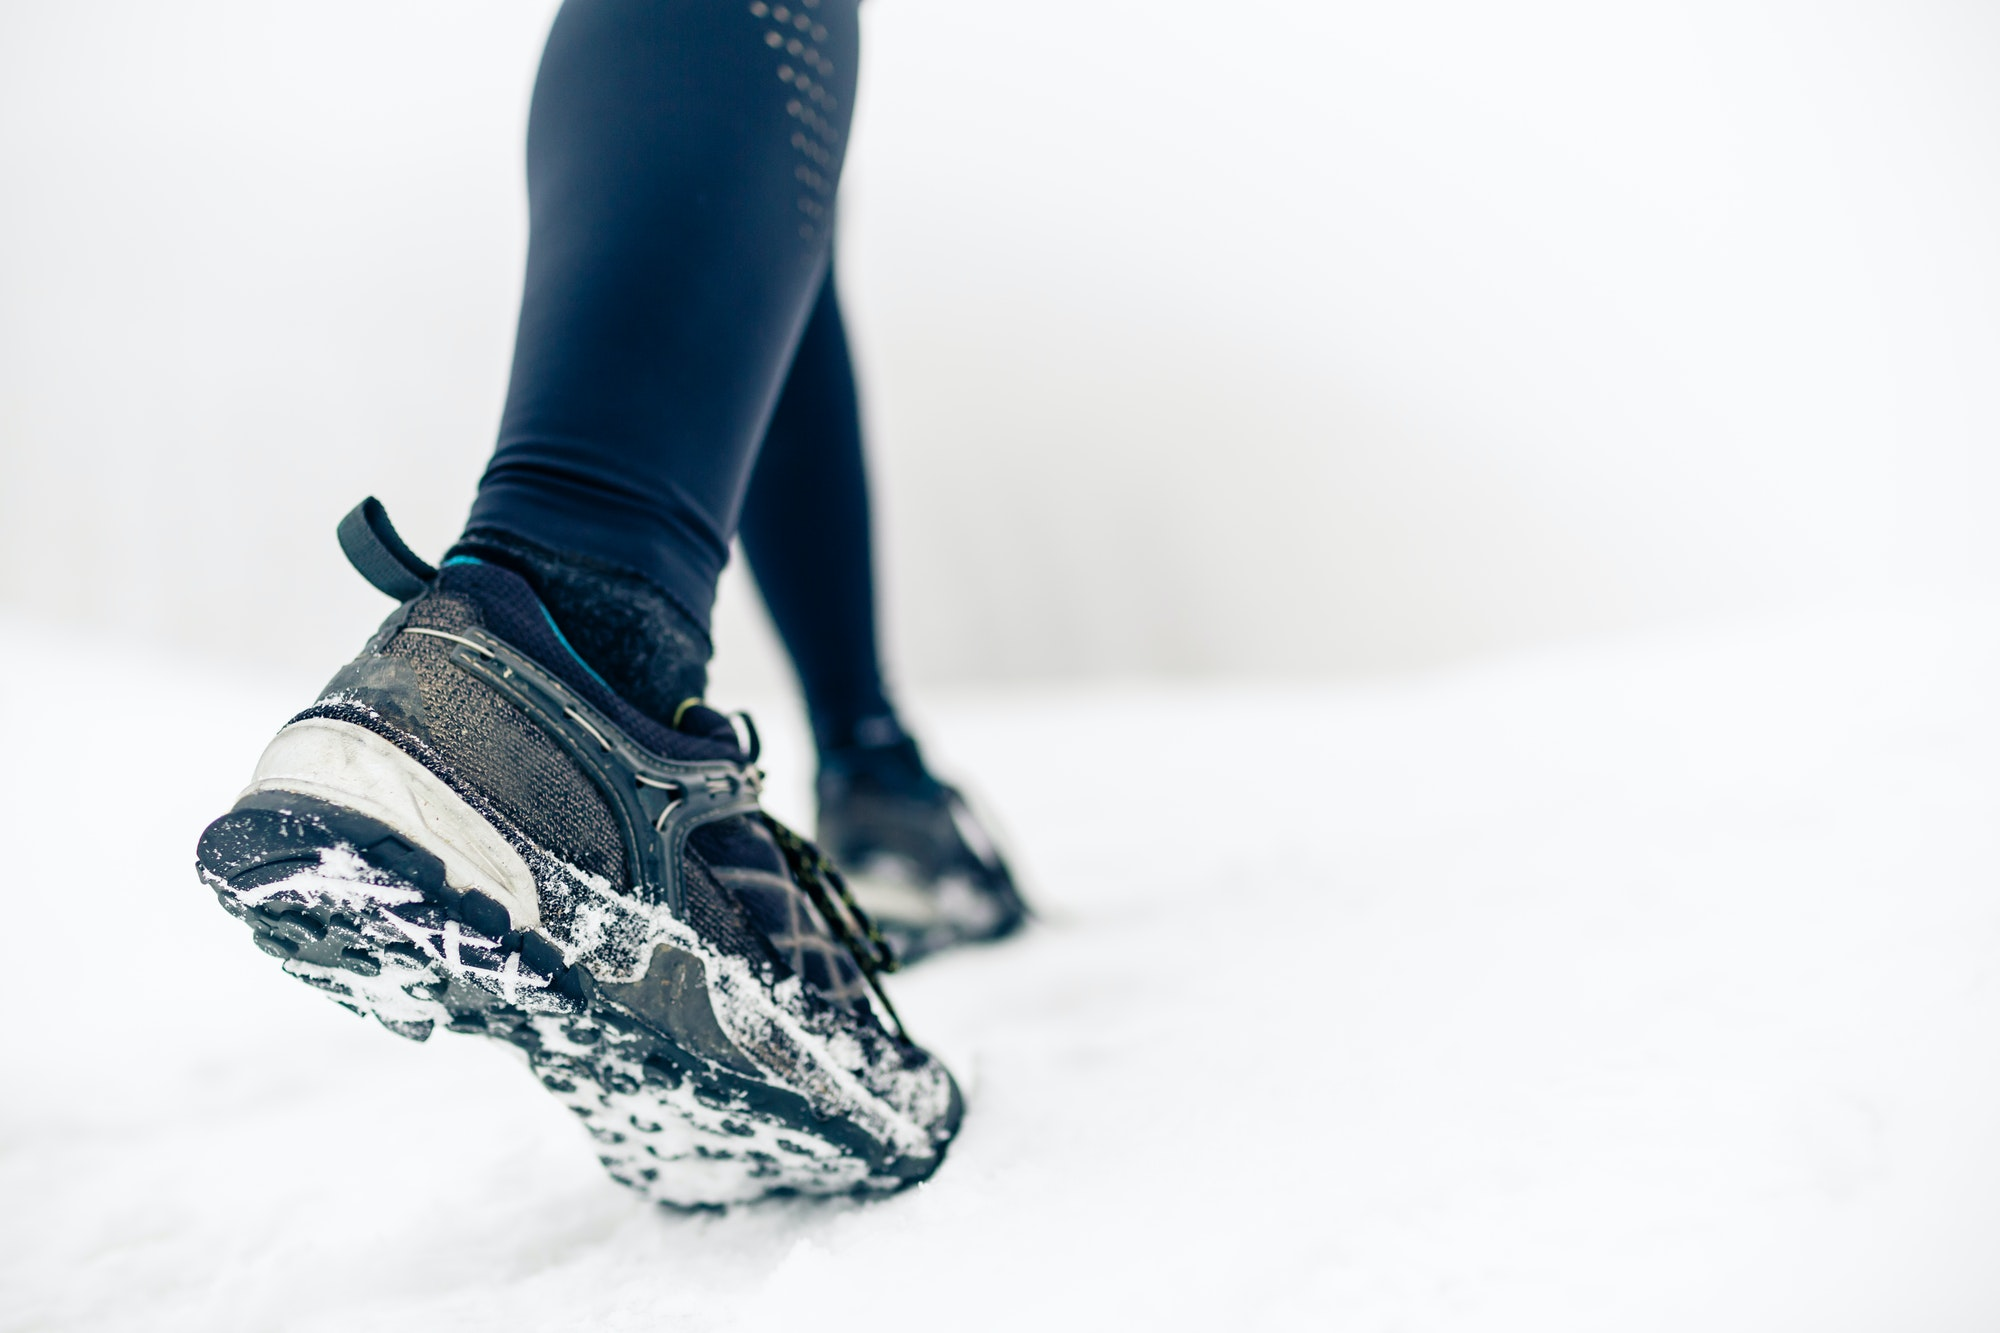 Hiking or walking shoes on snow, winter mountains